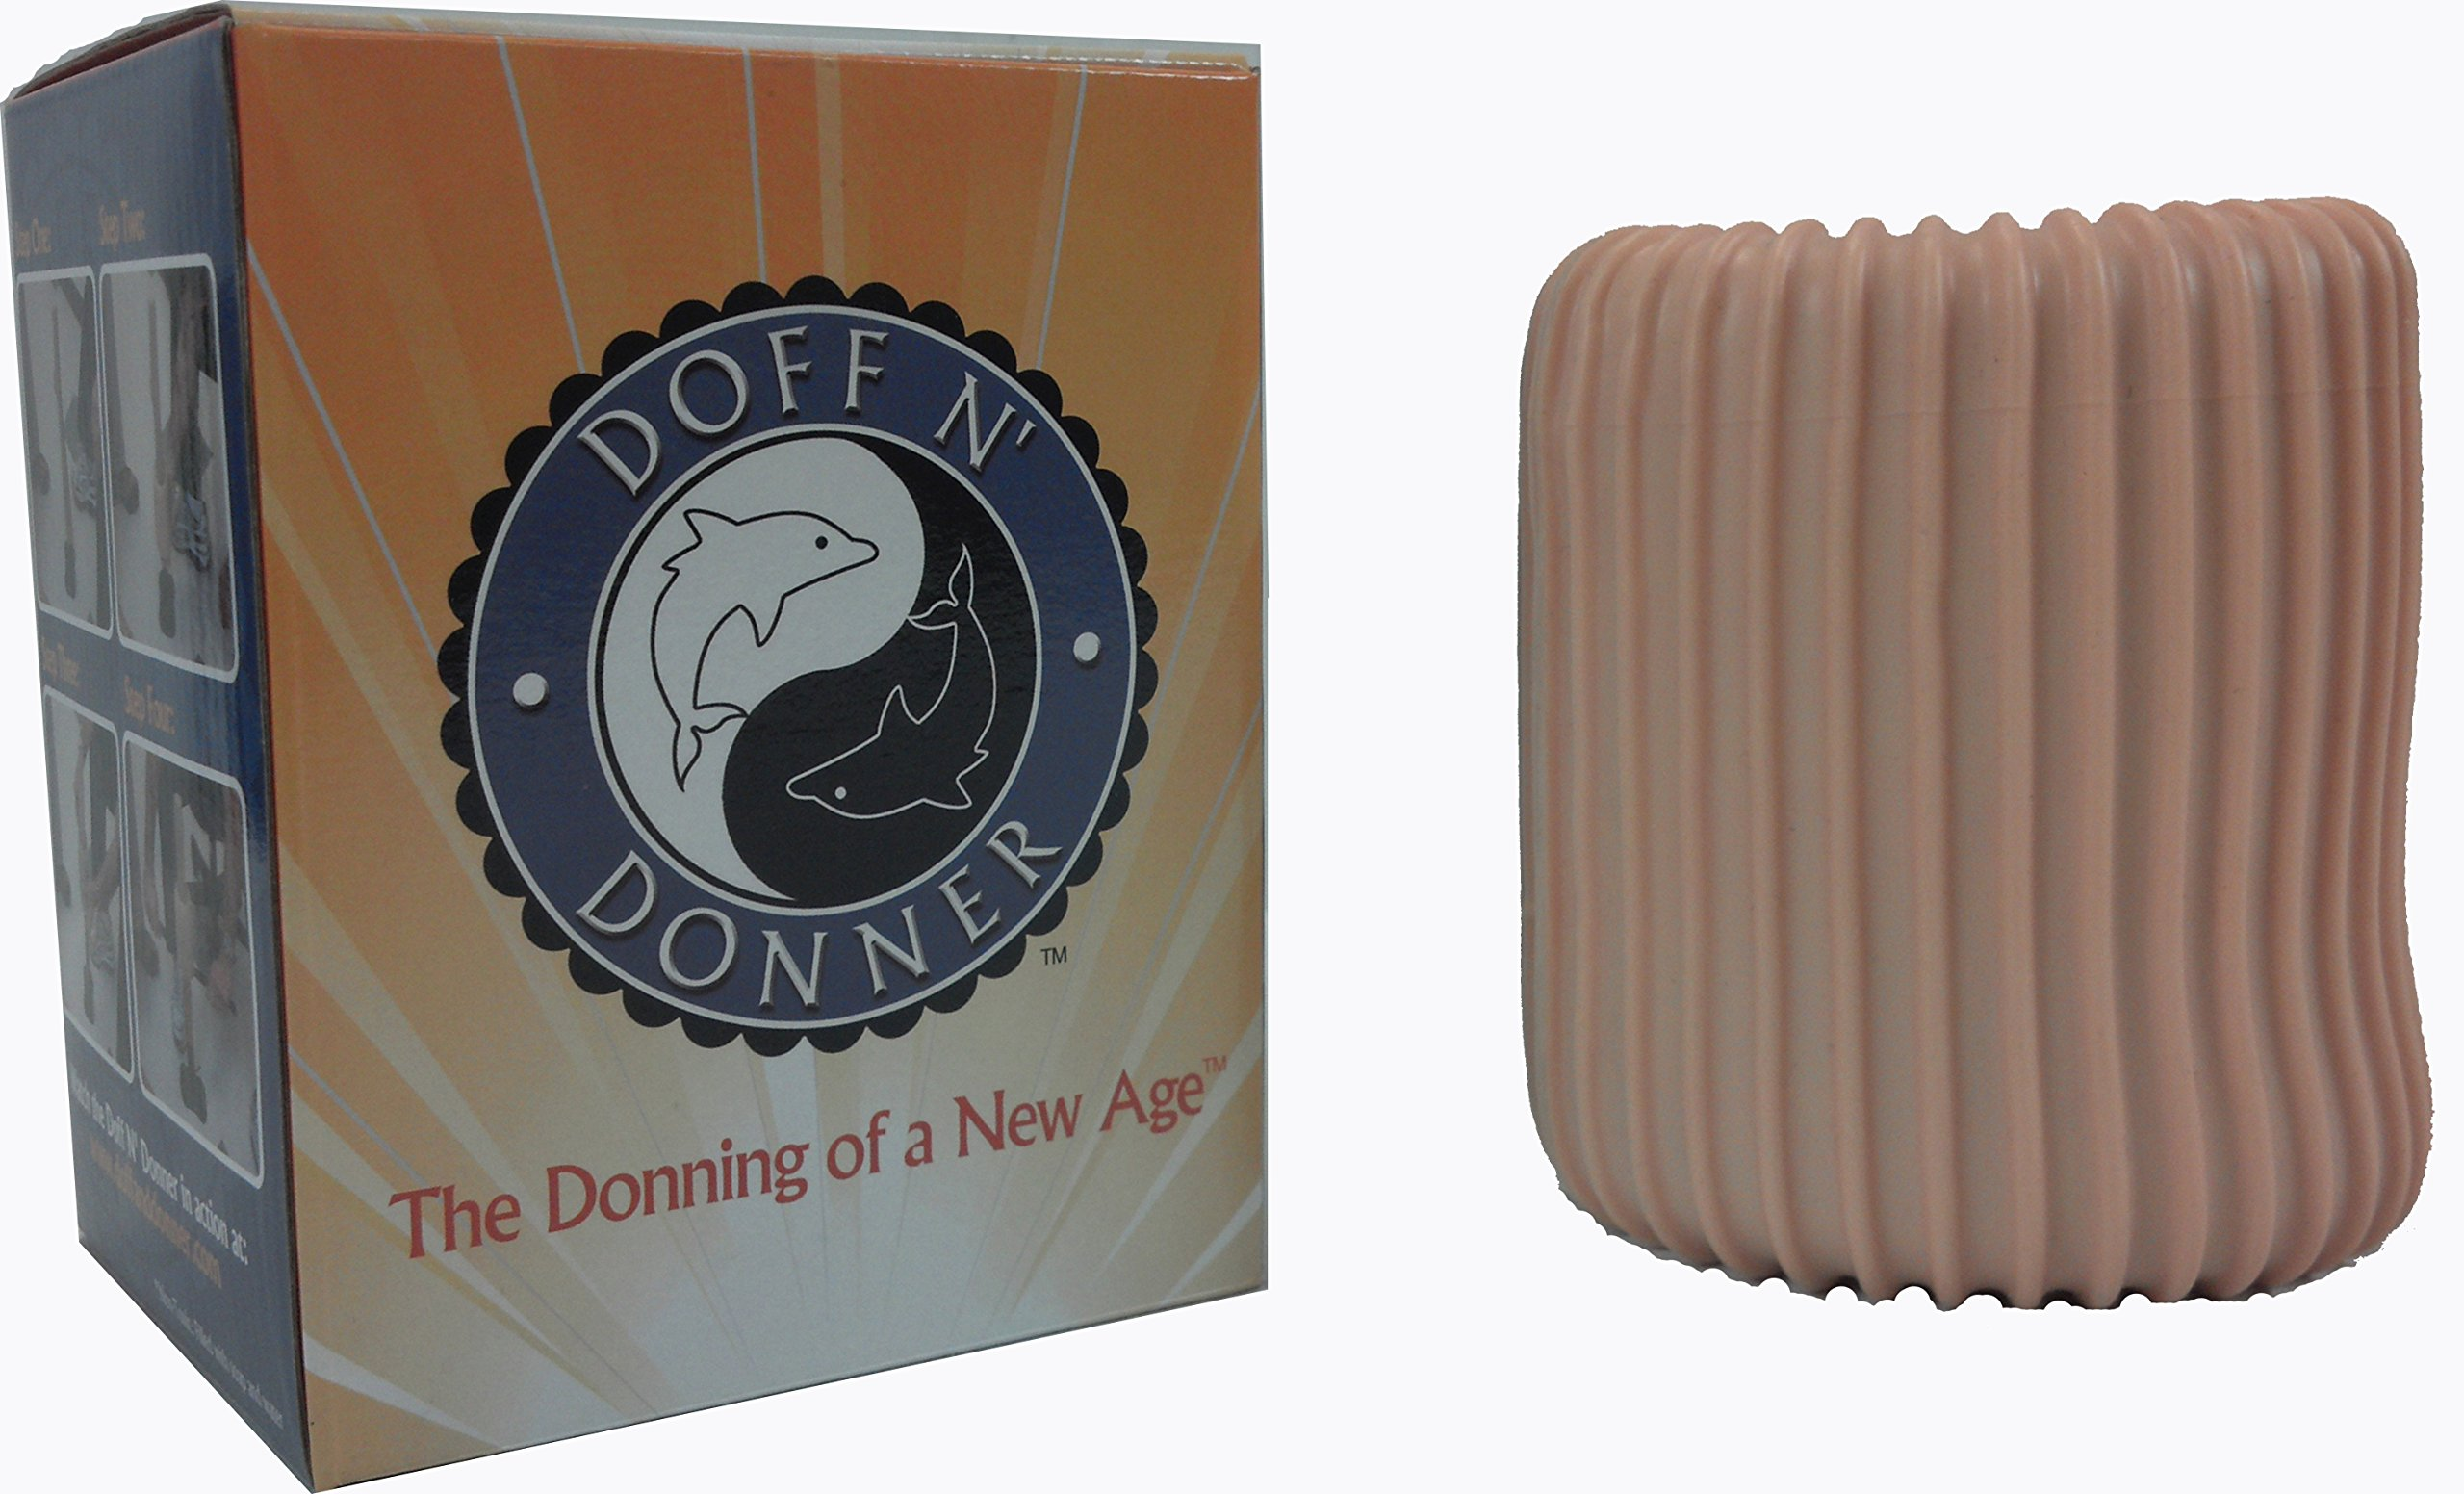 The Original Doff N' Donner ''Sleeve''